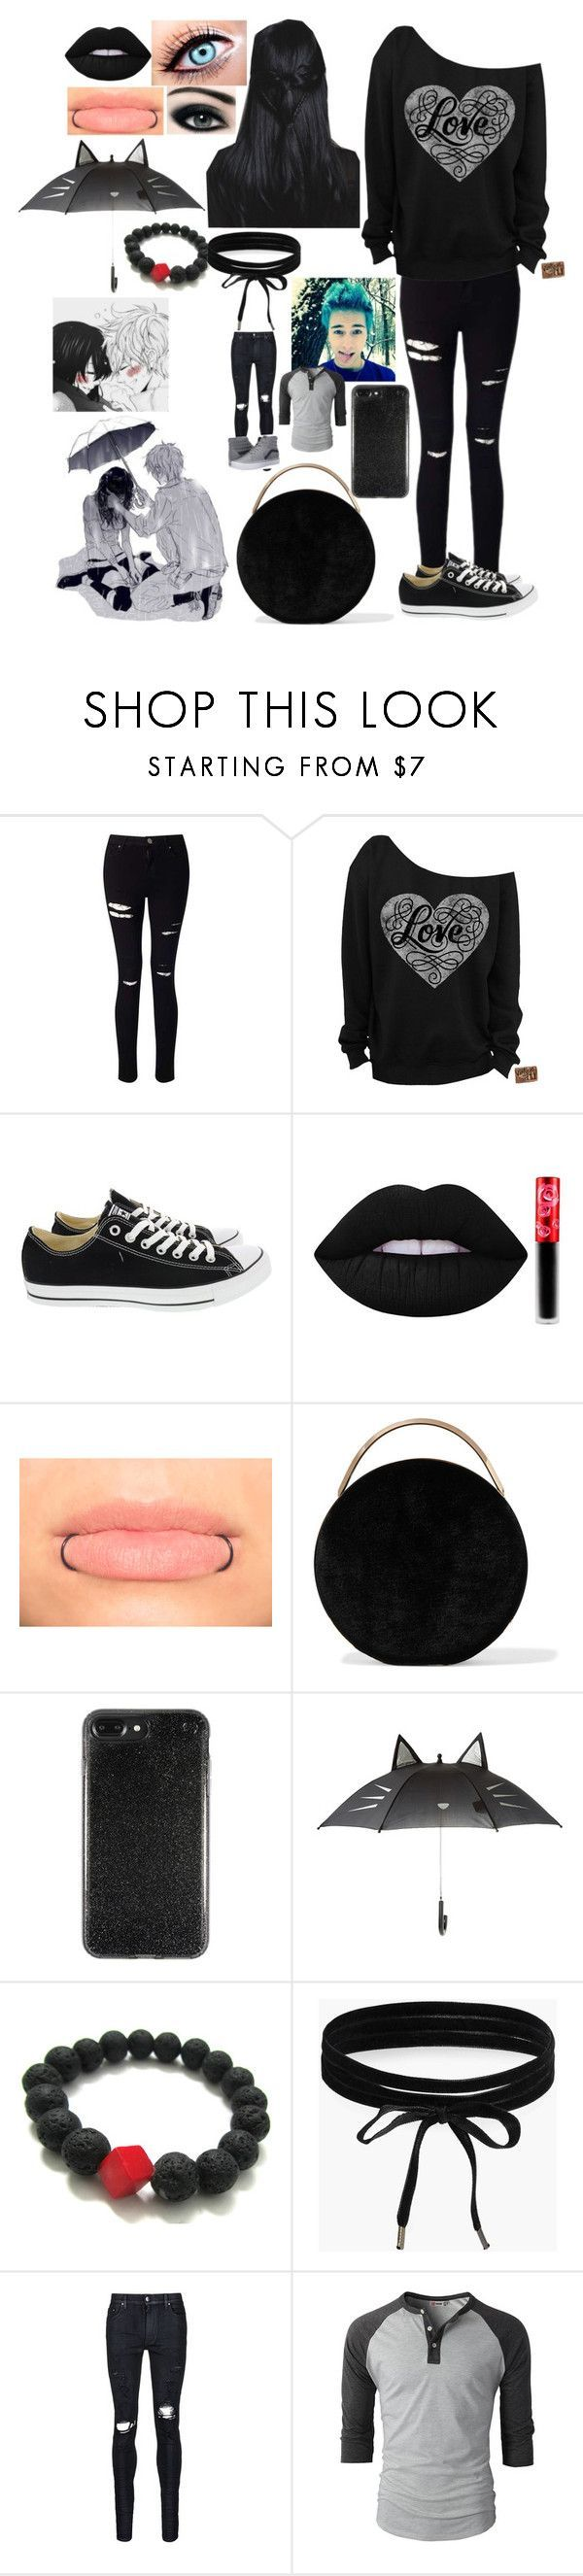 best crime images on pinterest lime crime converse outfits